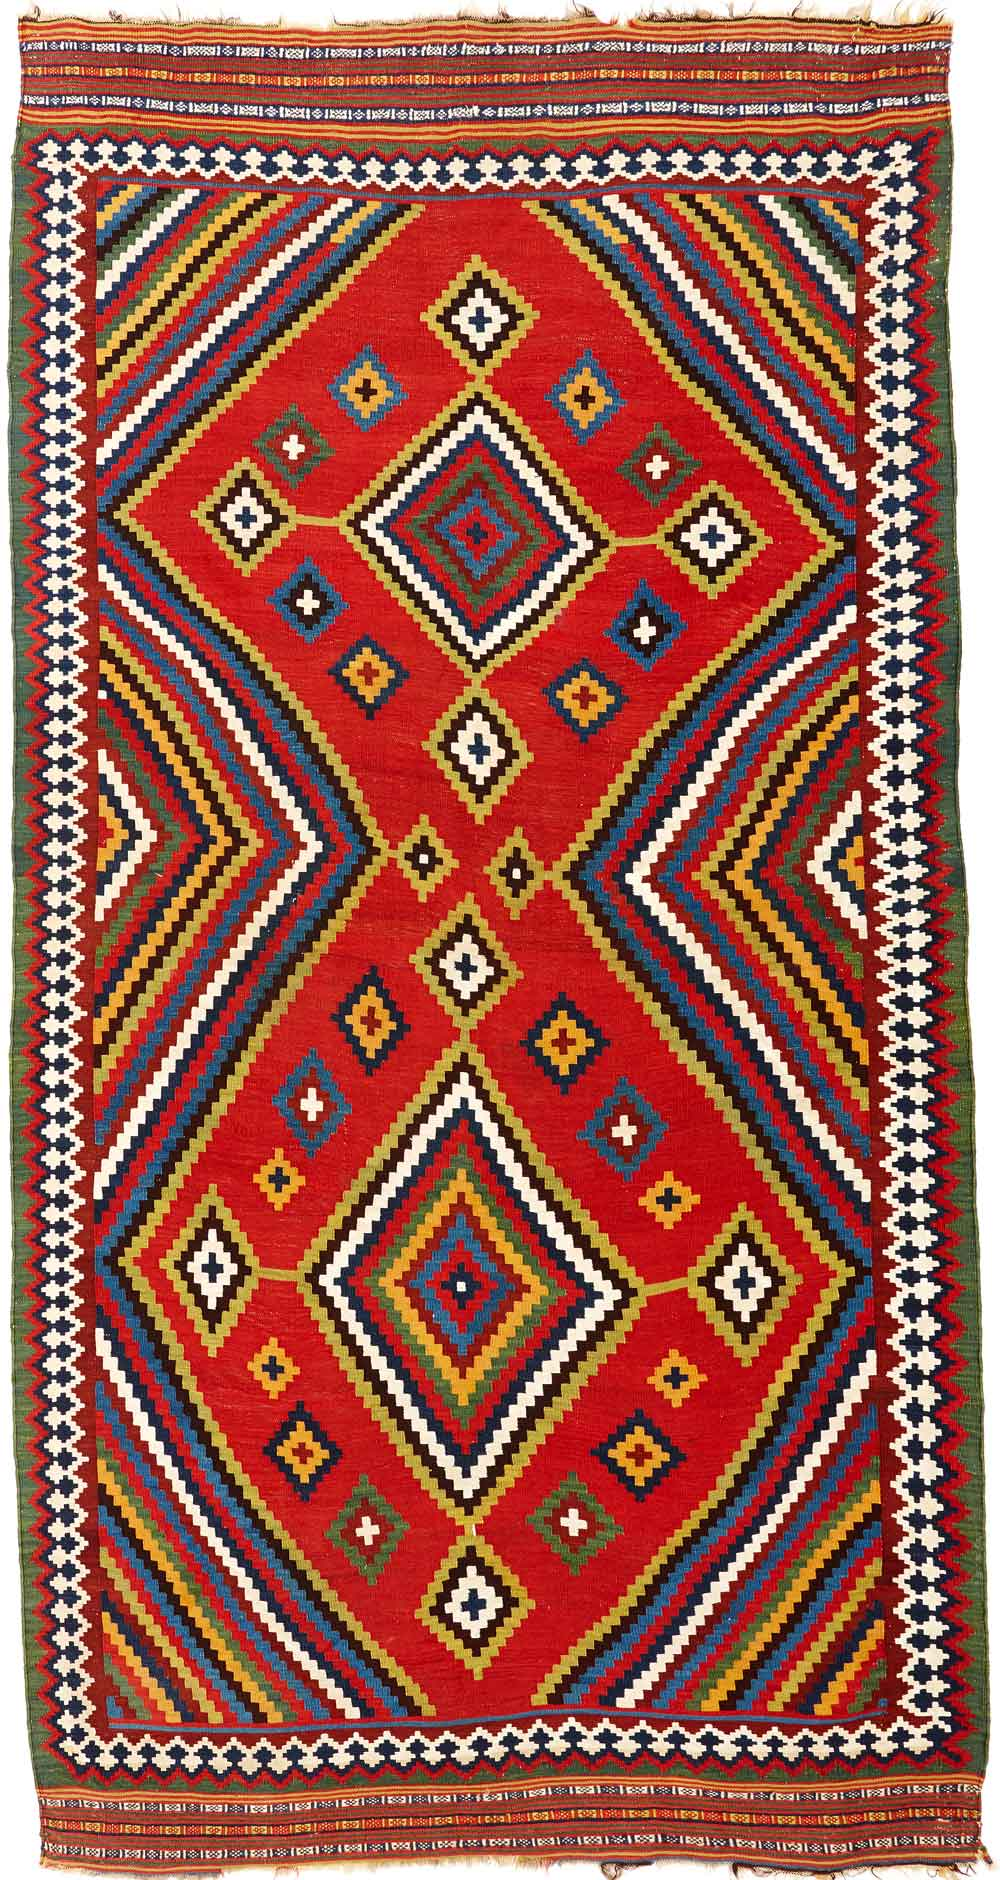 Qashqa'i kilim, Yalameh tribe, 19th century South-Persia, Fars region, 156 x 276 cm. Neiriz Collection on view in 100 Kilims at Halle Germany